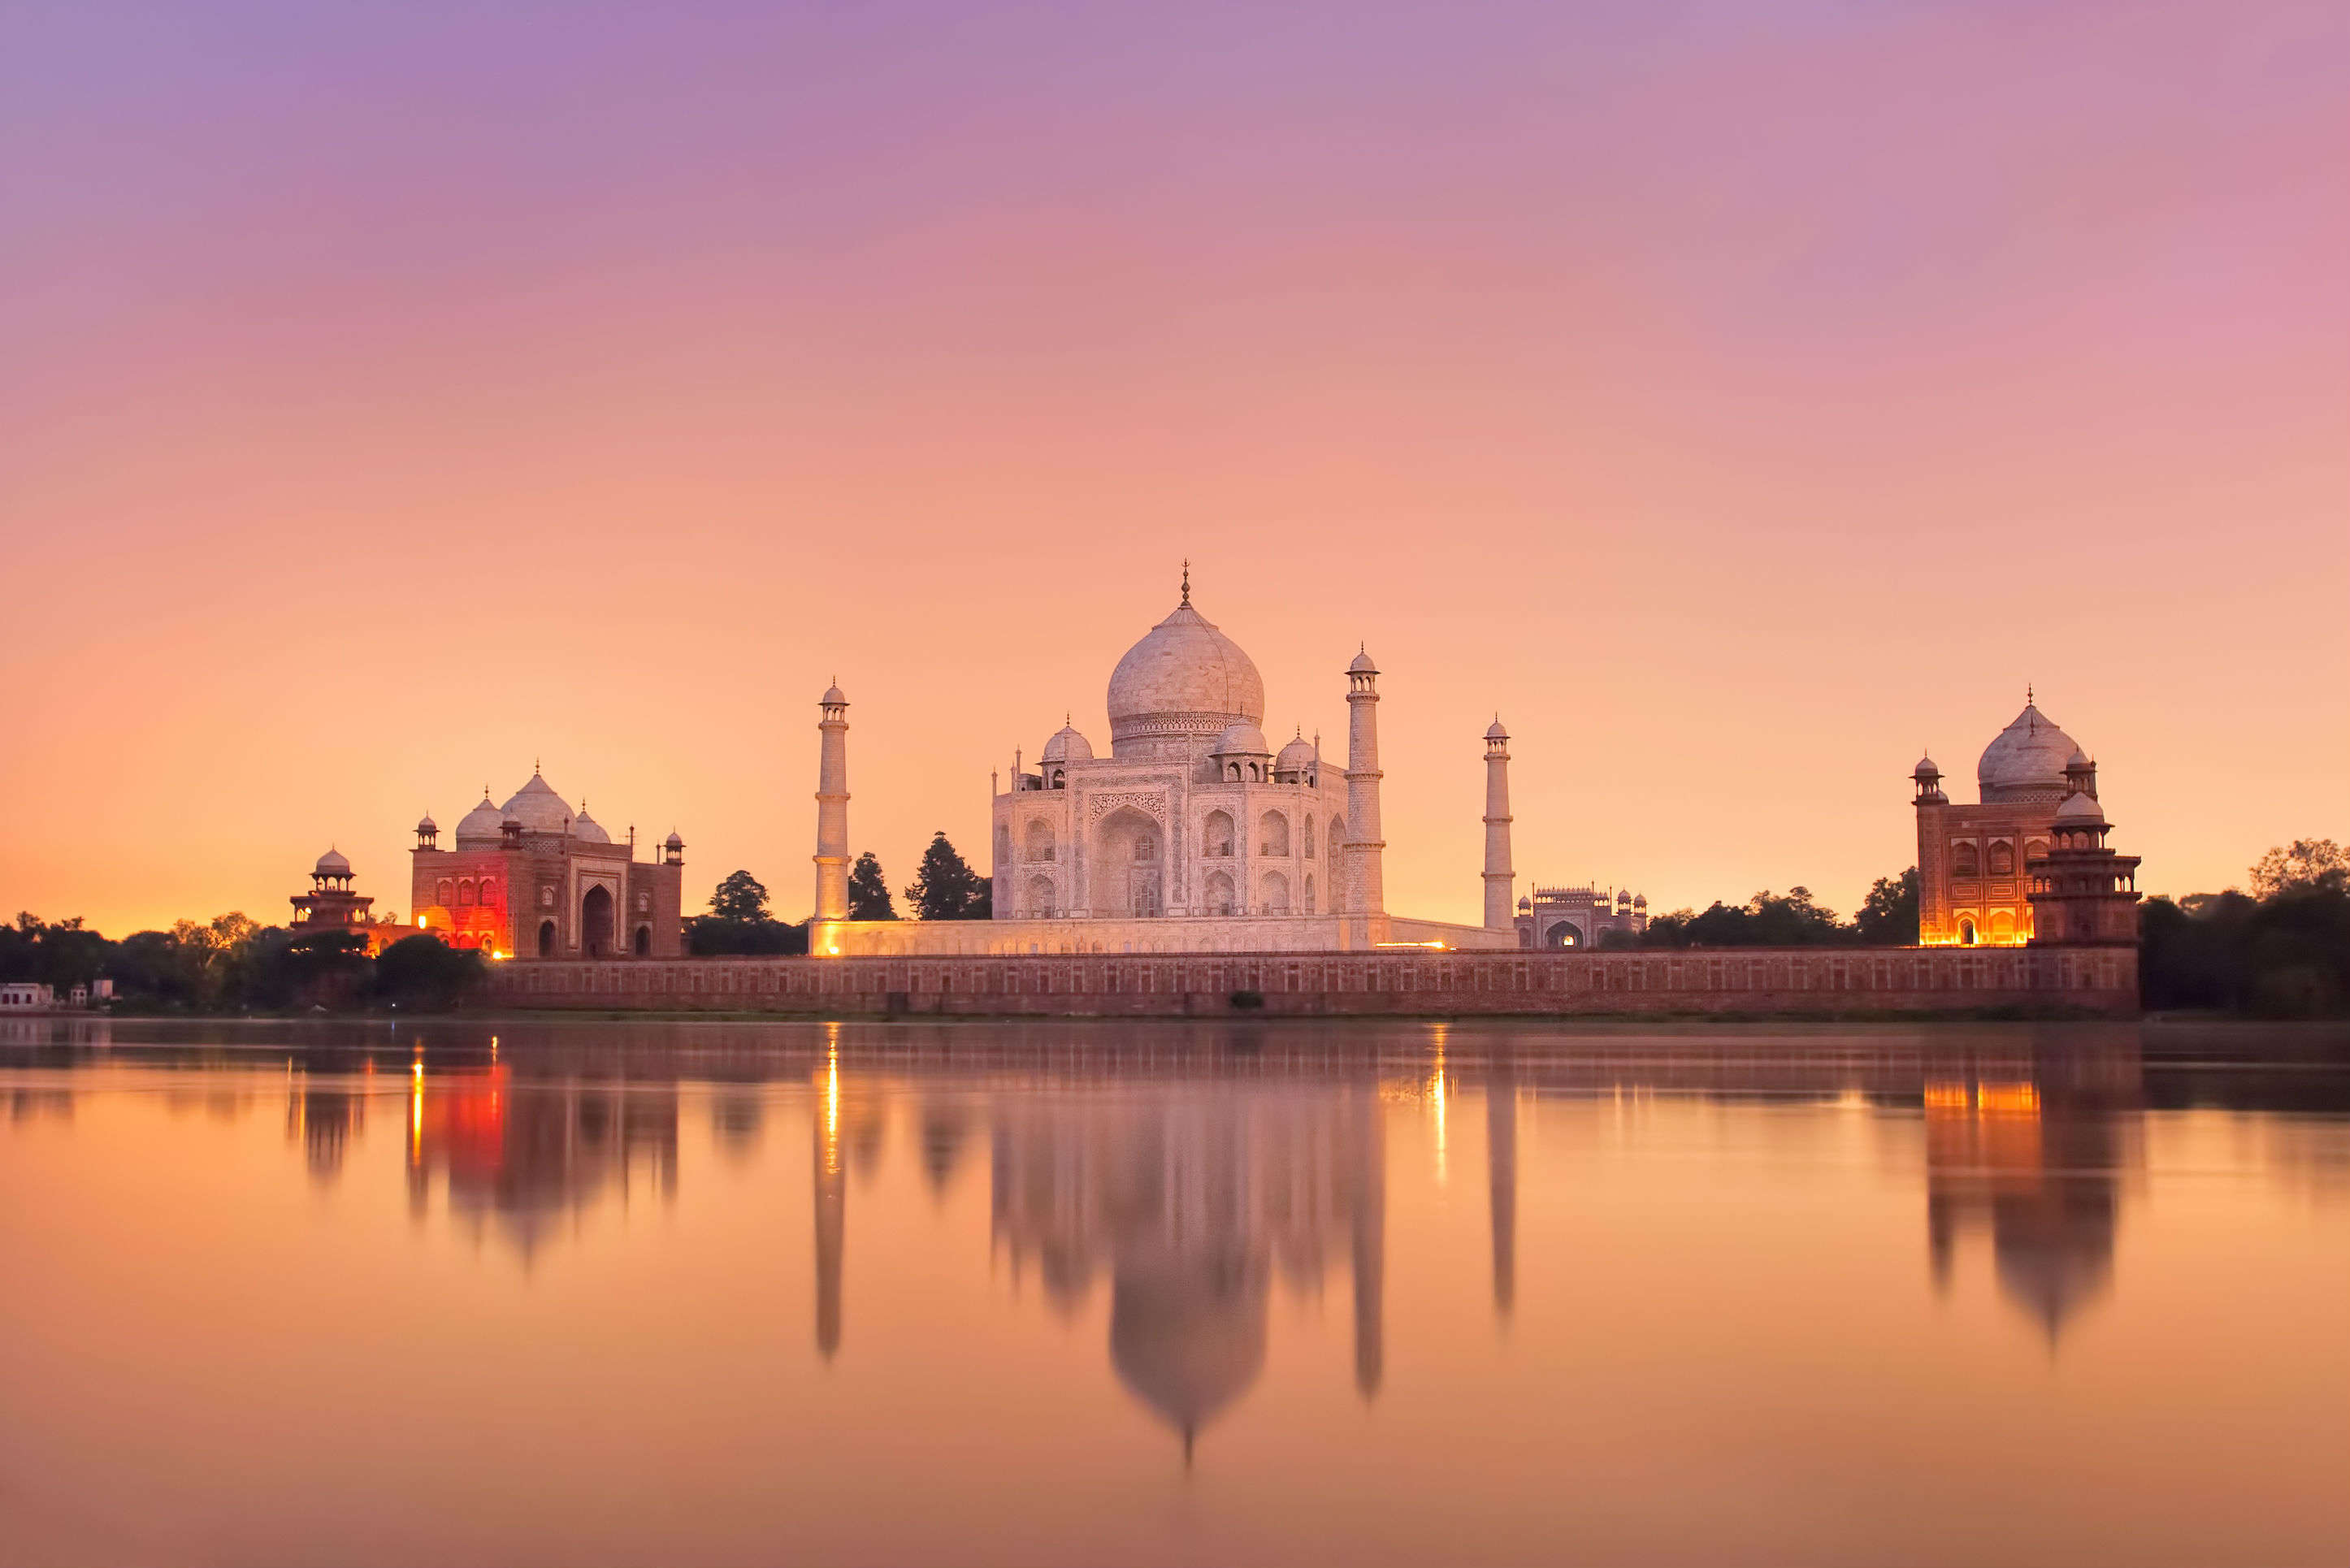 Taj Mahal and Agra Fort are among the two highest revenue generating monuments for 2015-2018